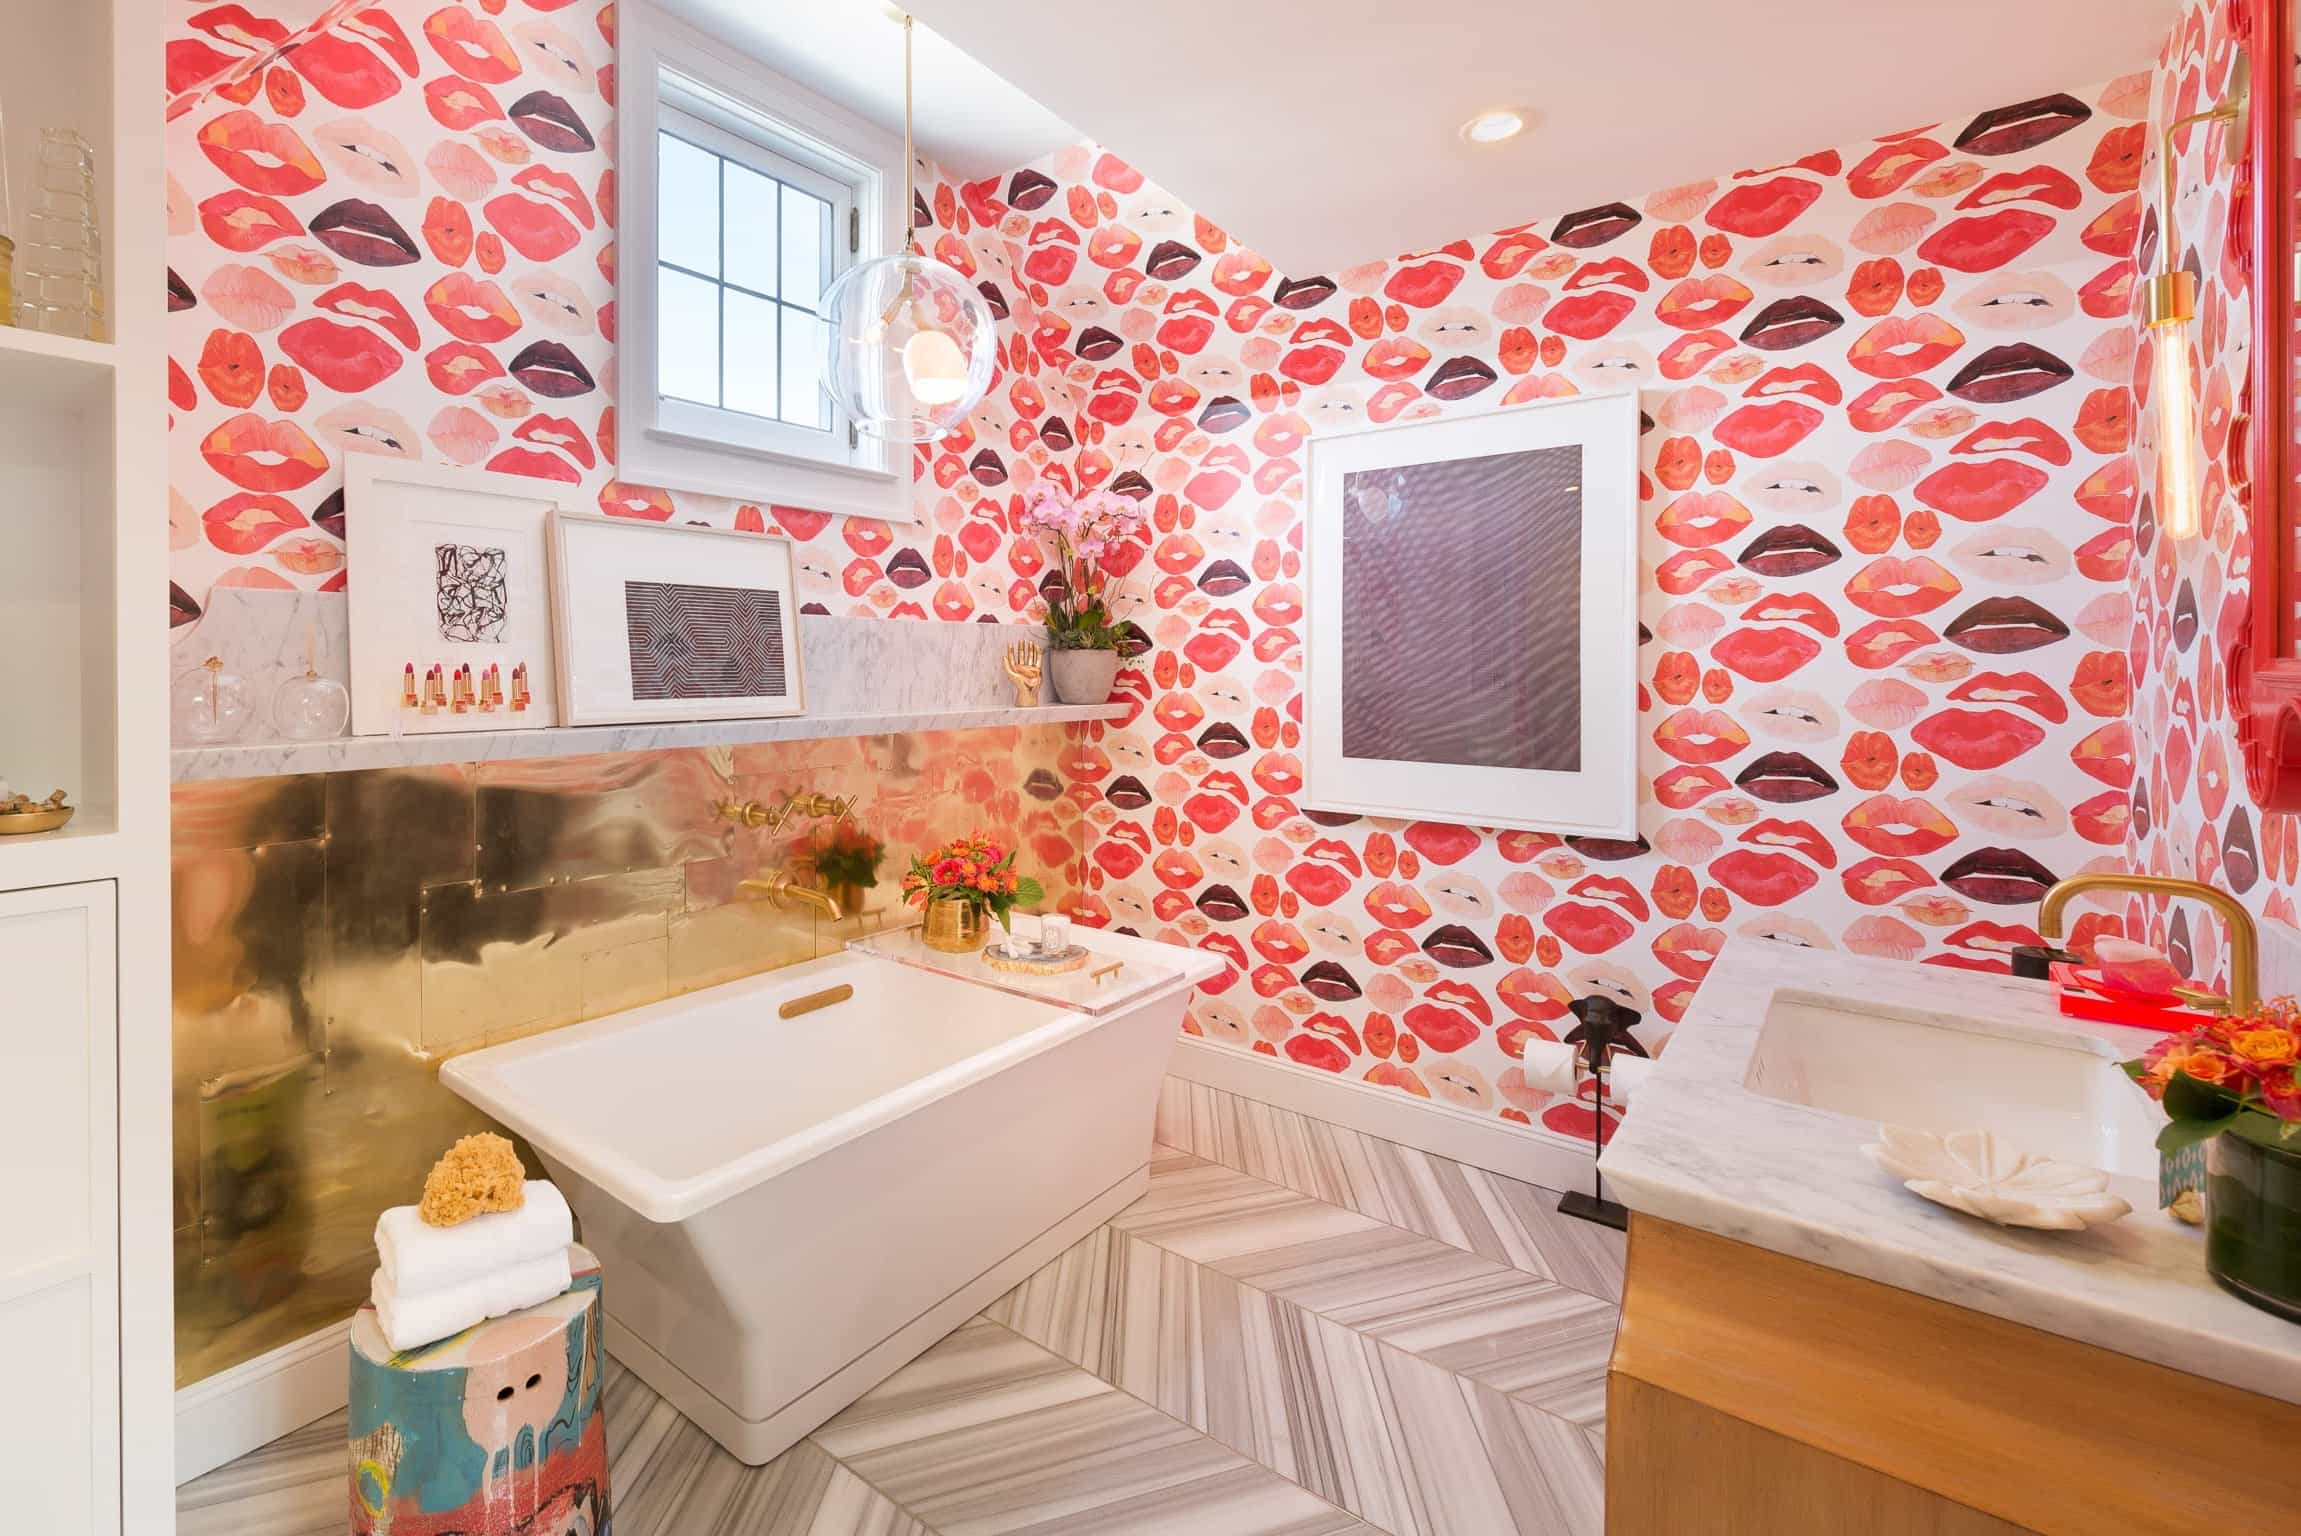 Pink Lipstick Wallpaper Print For Girly Glam Bathroom (View 3 of 10)